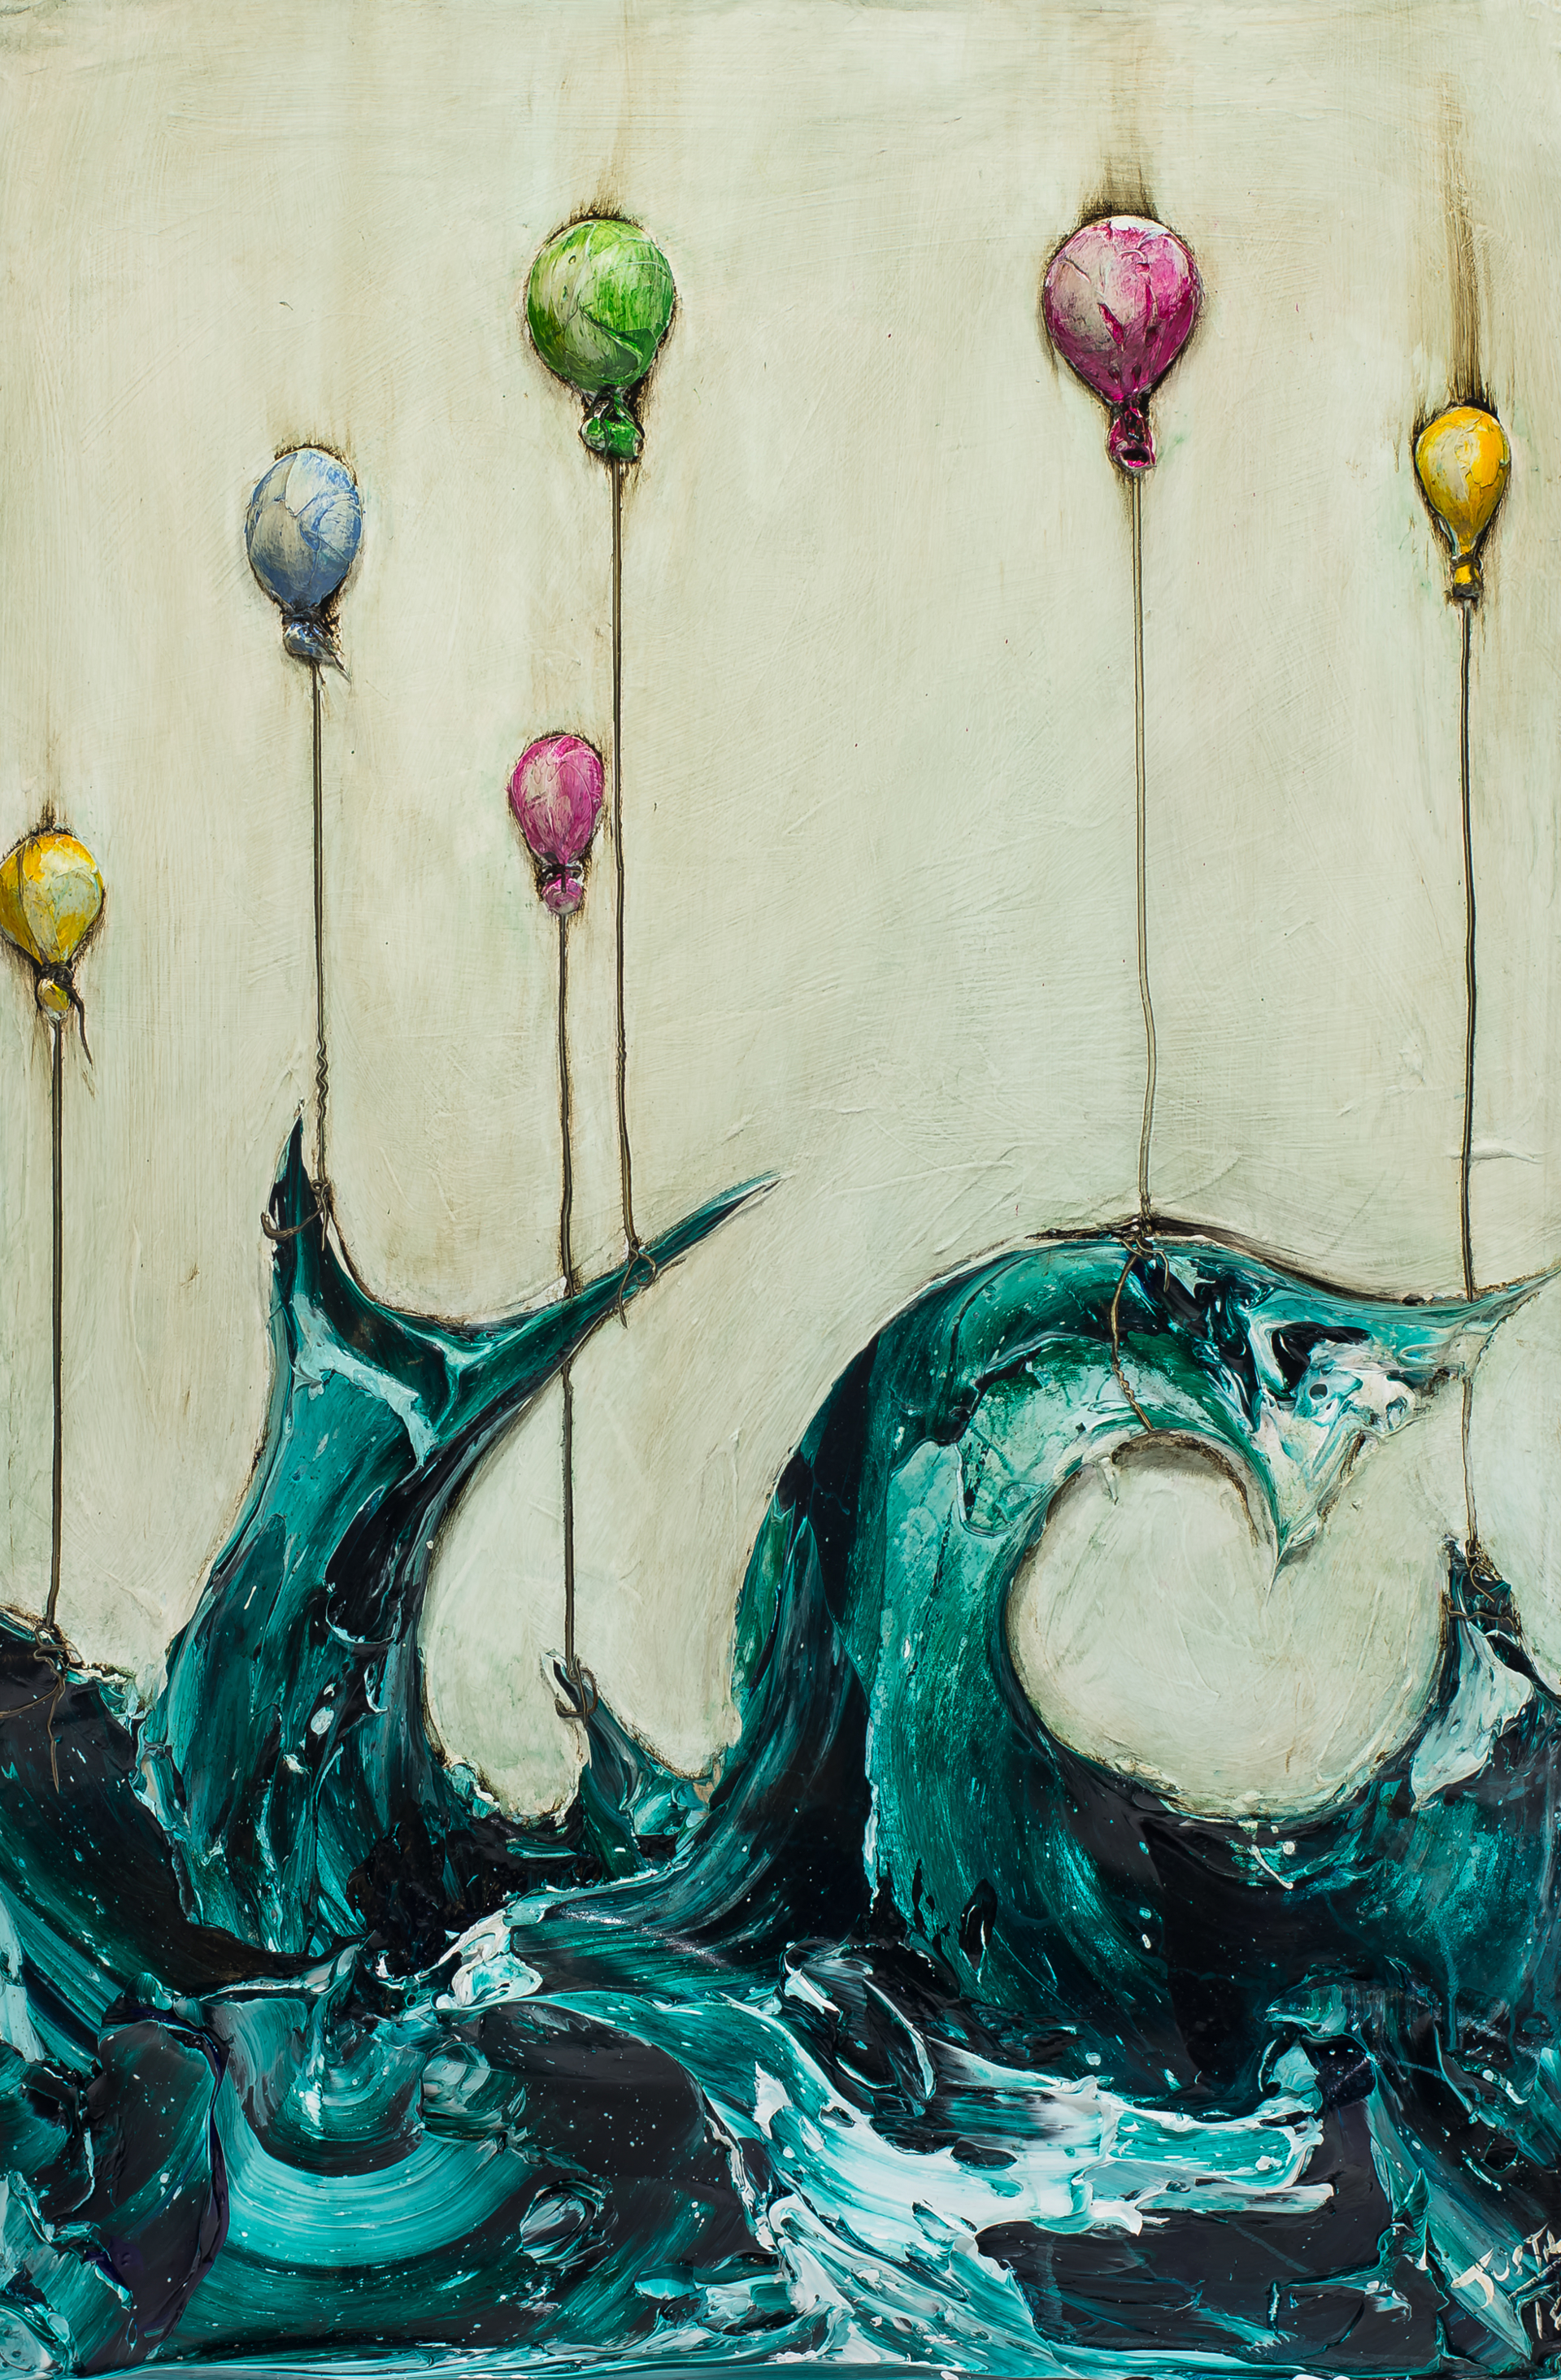 WAVE WITH BALLOONS WV24X36-2018-325 by Justin Gaffrey